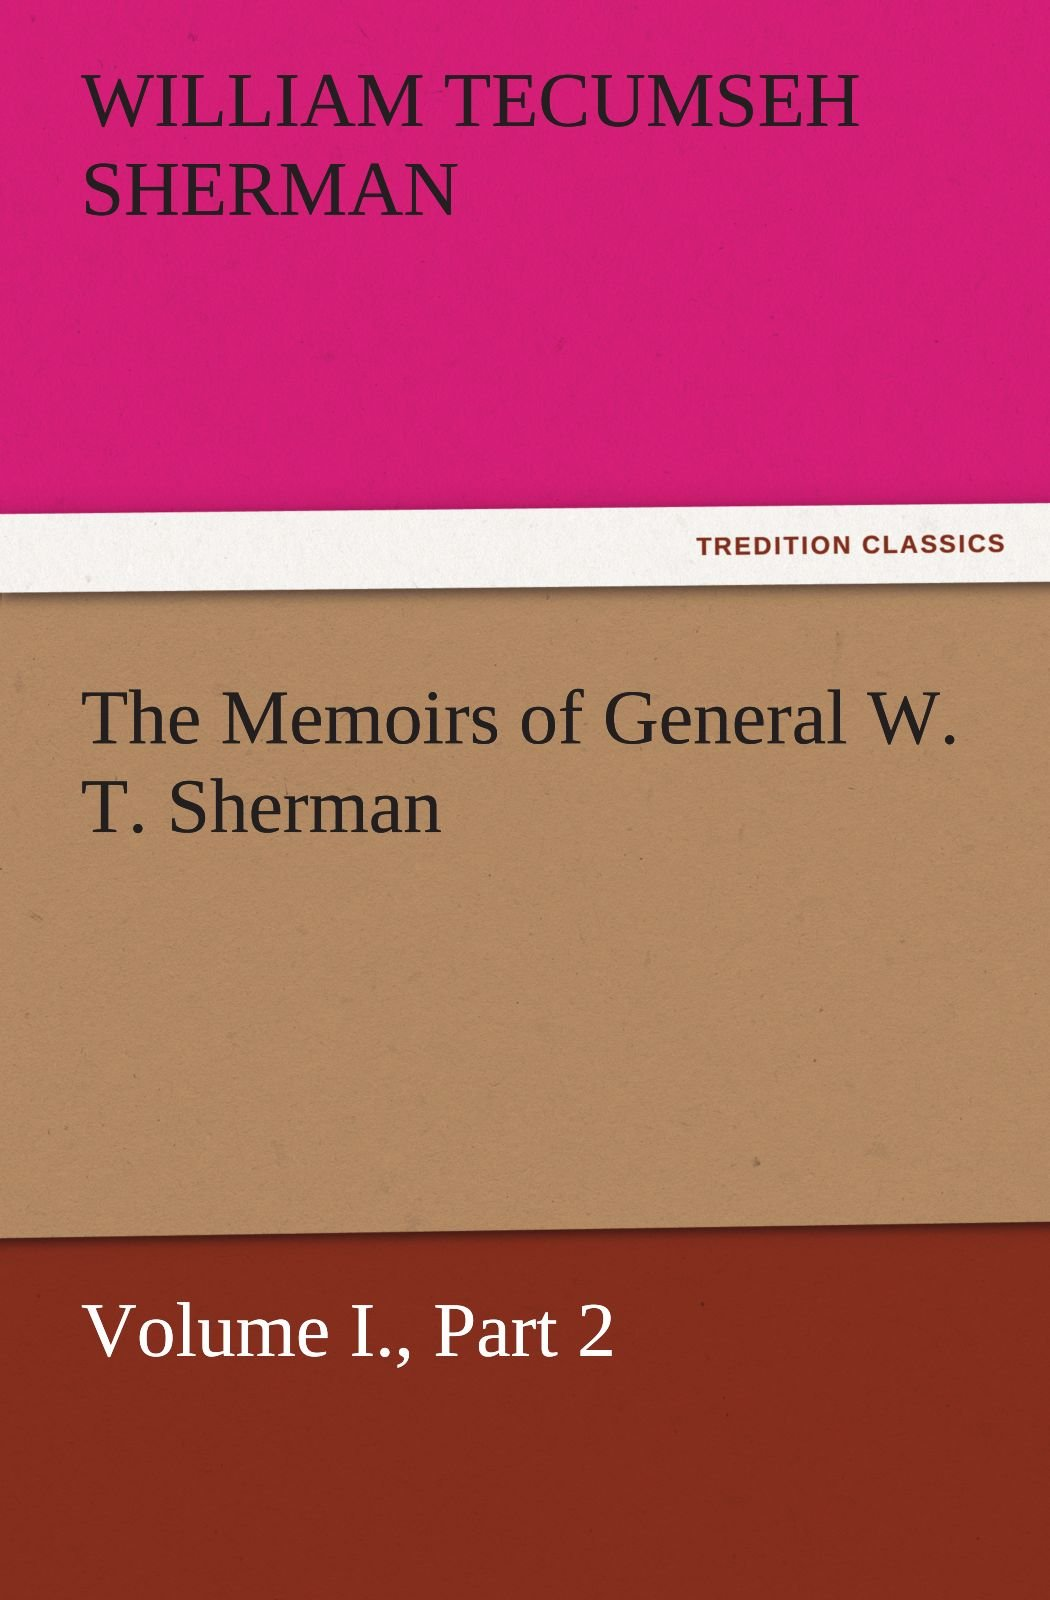 Download The Memoirs of General W. T. Sherman, Volume I., Part 2 (TREDITION CLASSICS) ebook